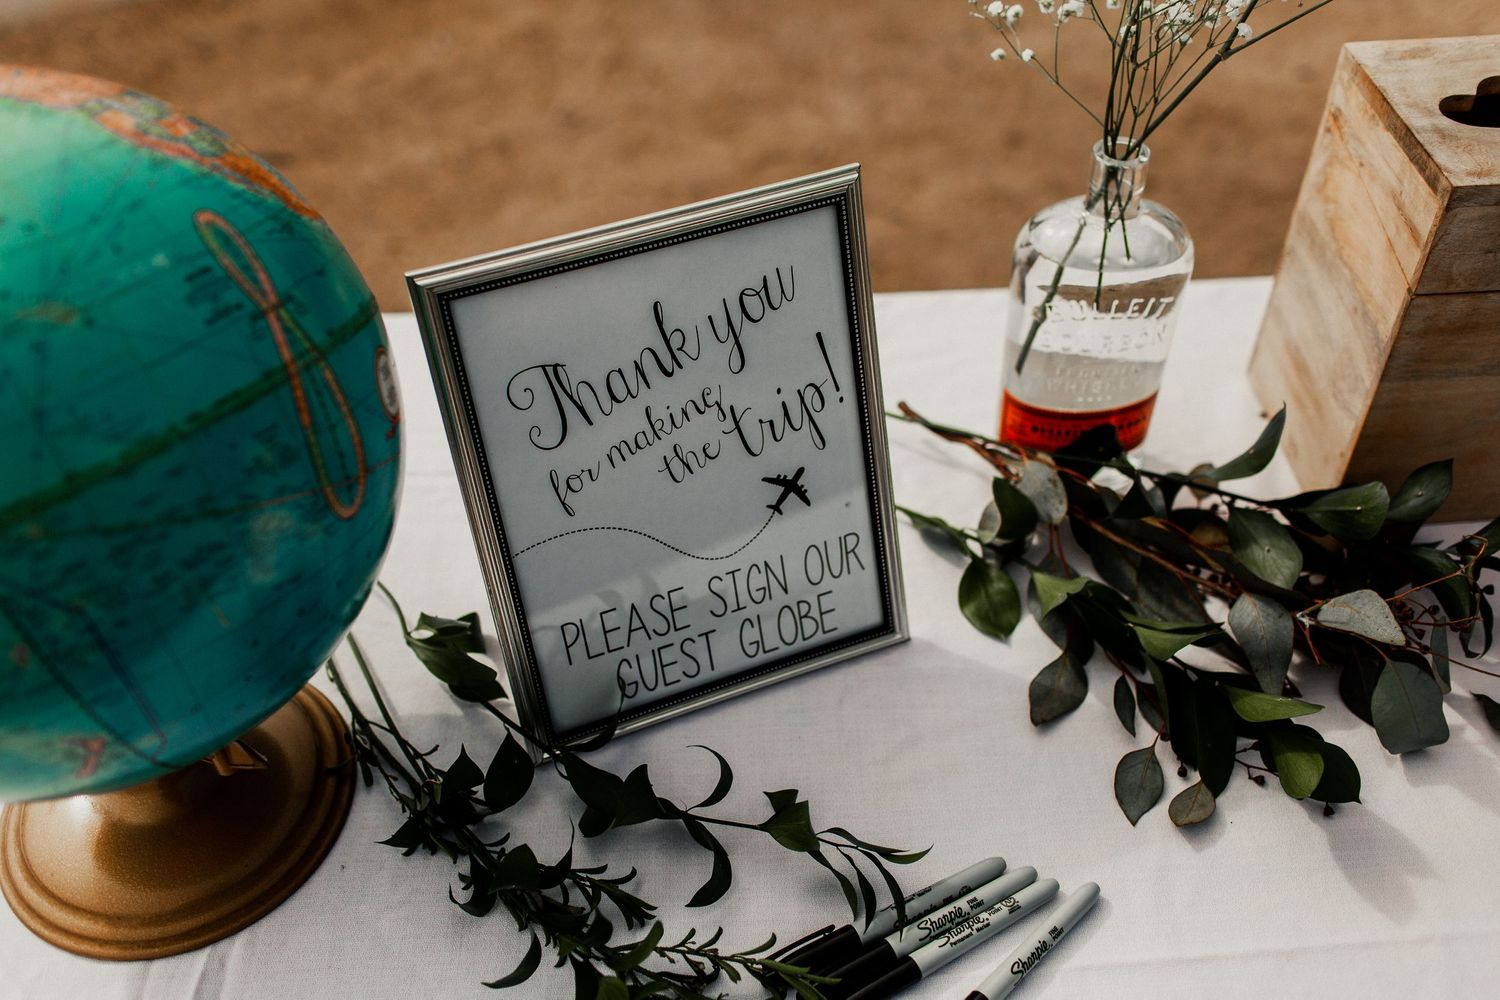 reception decor and sign in with globe at wedding reception